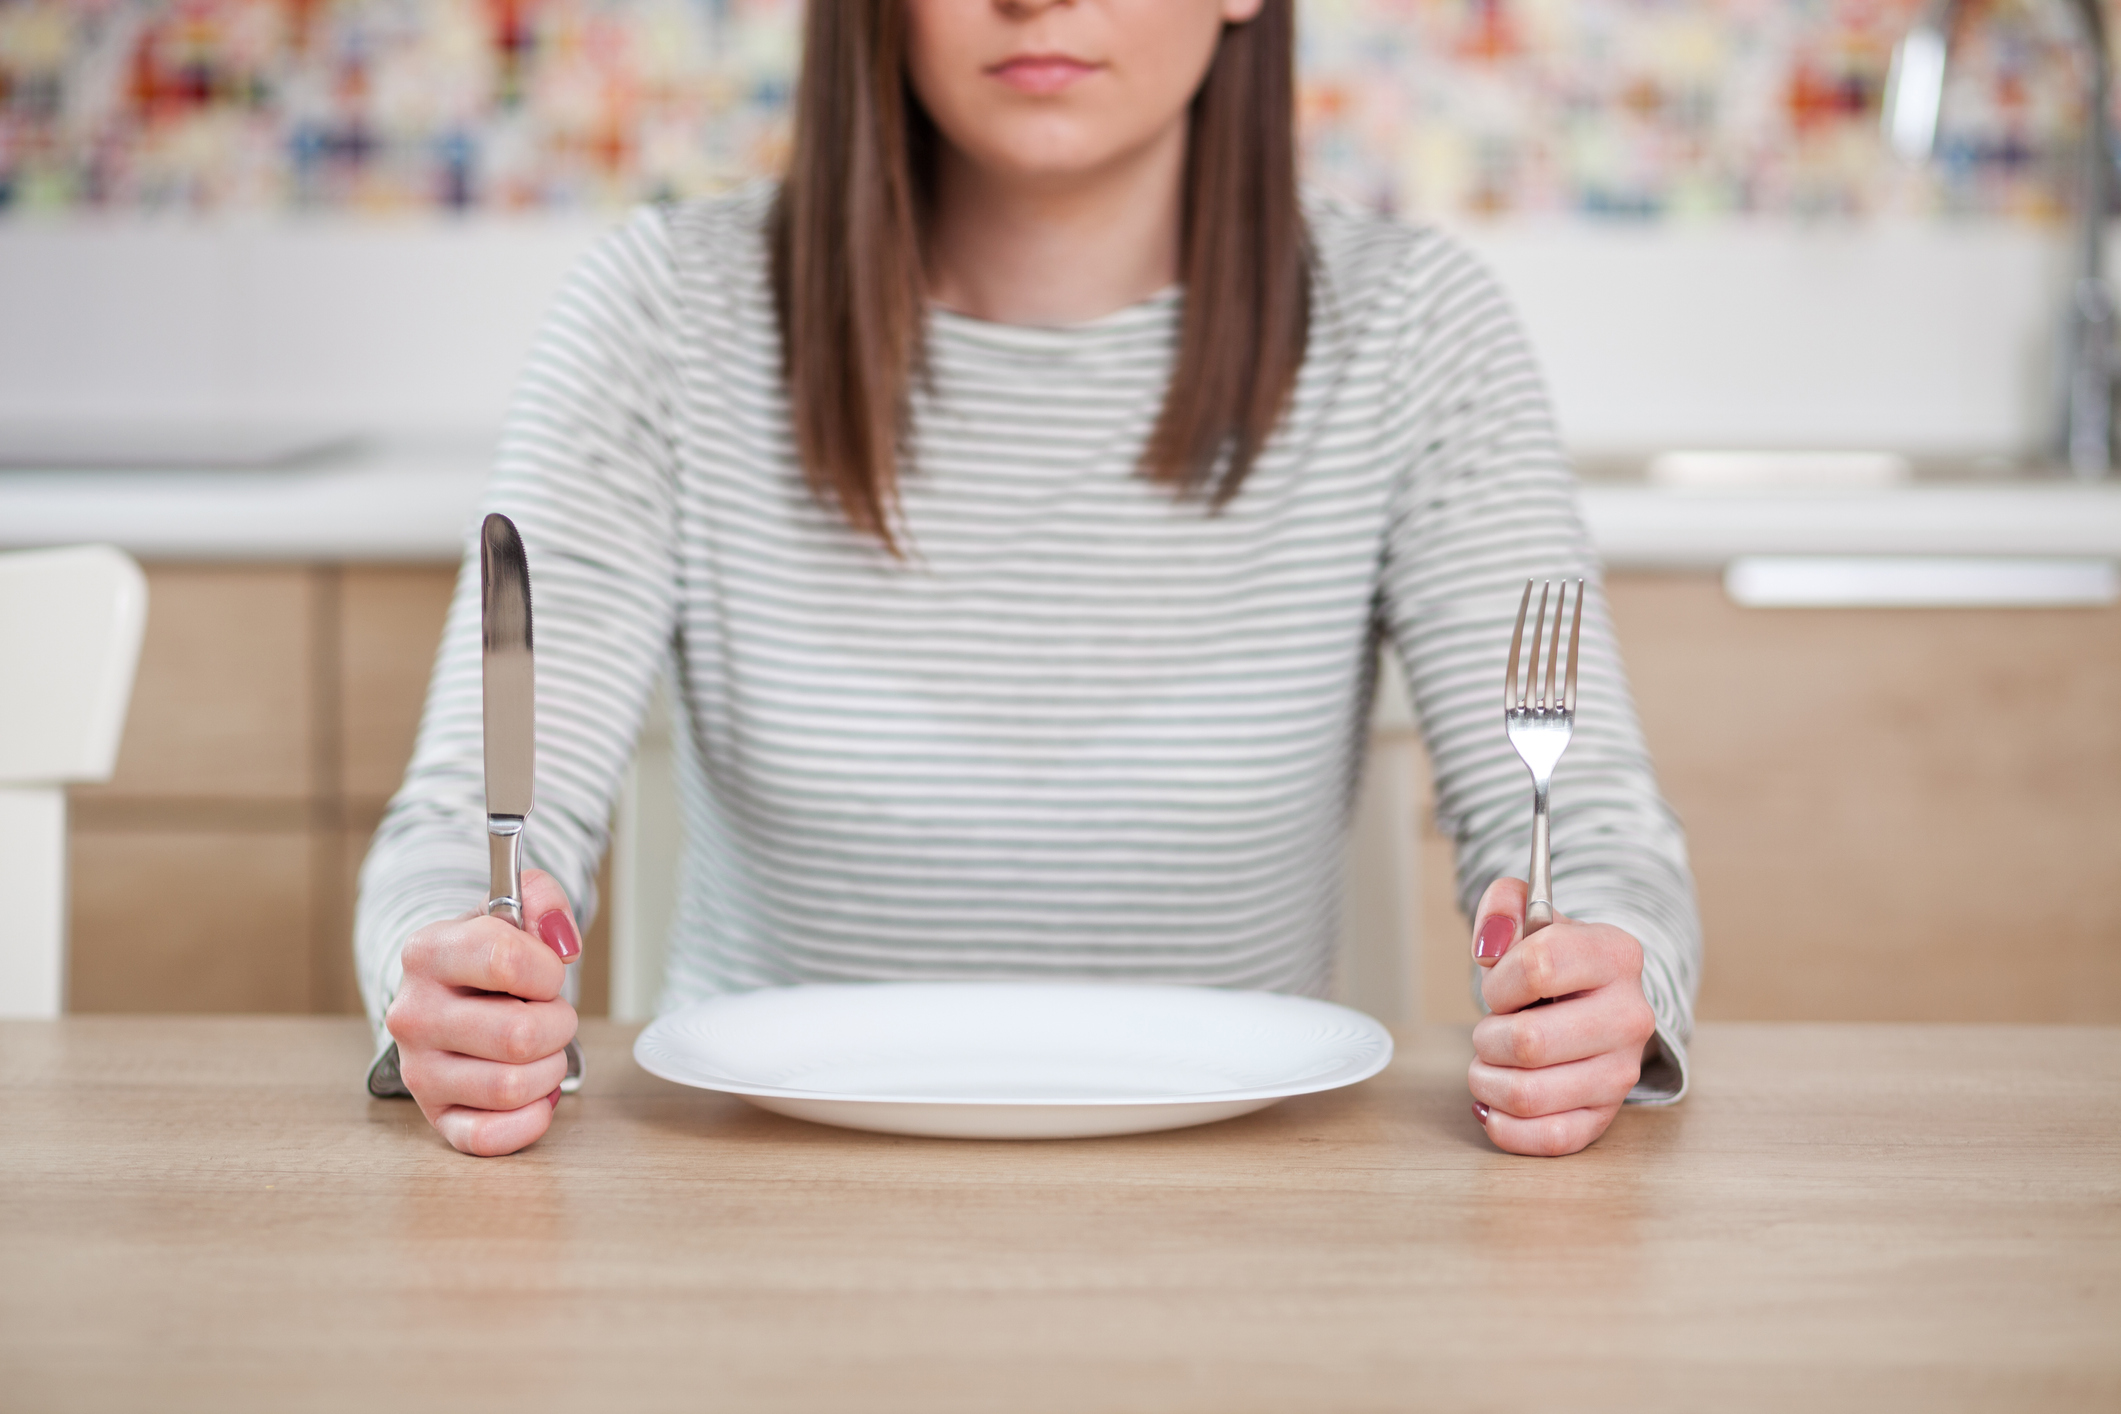 A woman in front of an empty plate